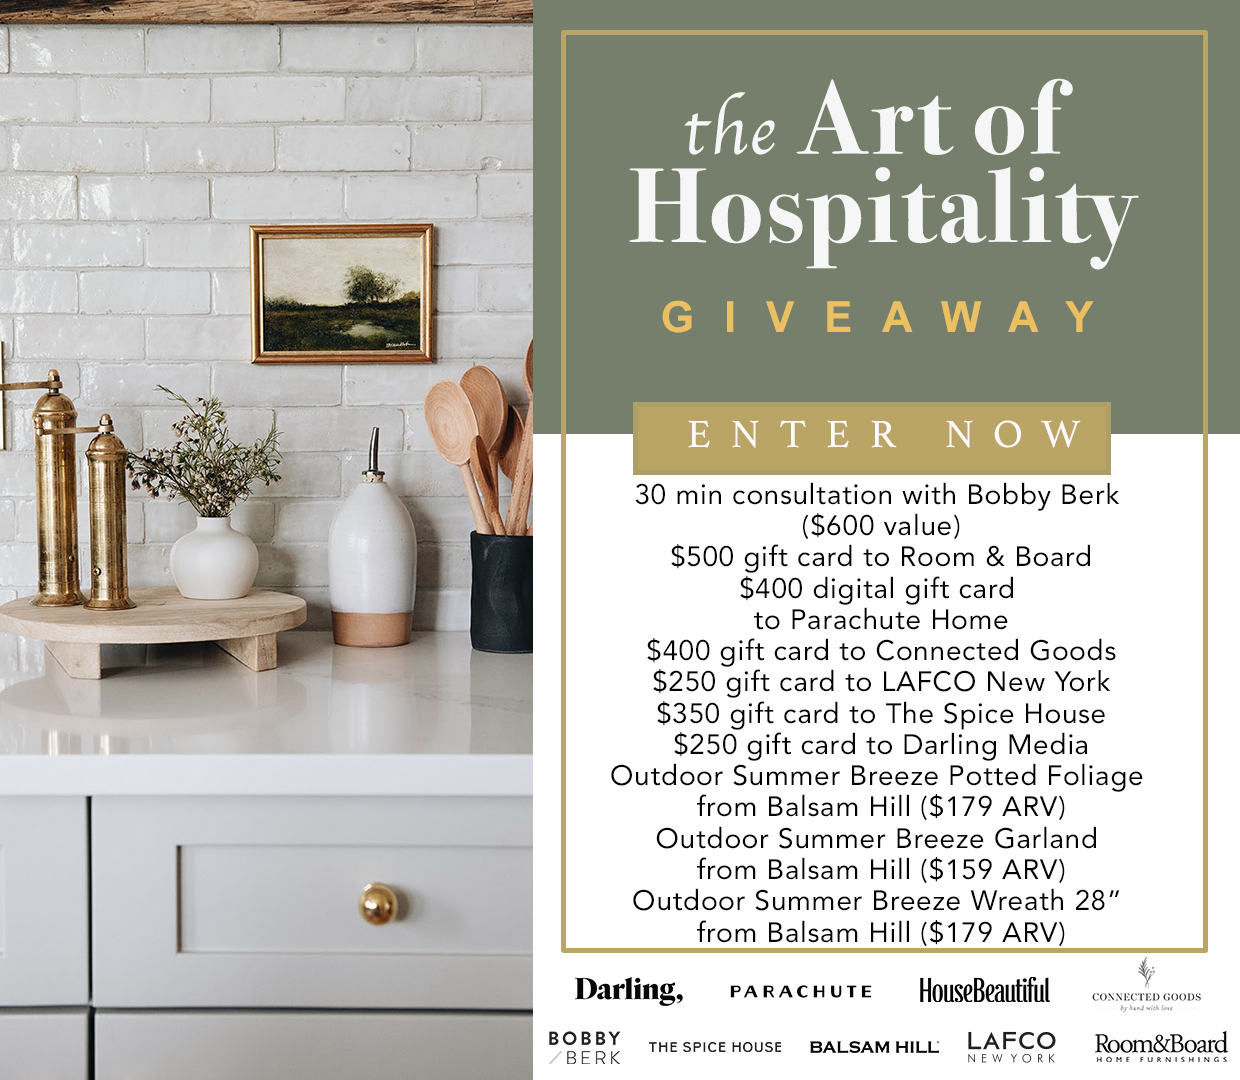 Enter the Art of Hospitality giveaway for your chance to win: A 30 min consultation with Bobby Berk ($600 value), $500 gift card to Room & Board, a $400 digital gift card to Parachute Home, a $400 gift card to Connected Goods, a $250 gift card to LAFCO New York, a $350 gift card to The Spice House, a $250 gift card to Darling Media, an Outdoor Summer Breeze Potted Foliage from Balsam Hill ($179 ARV); An Outdoor Summer Breeze Garland from Balsam Hill ($159 ARV); and an Outdoor Summer Breeze Wreath 28